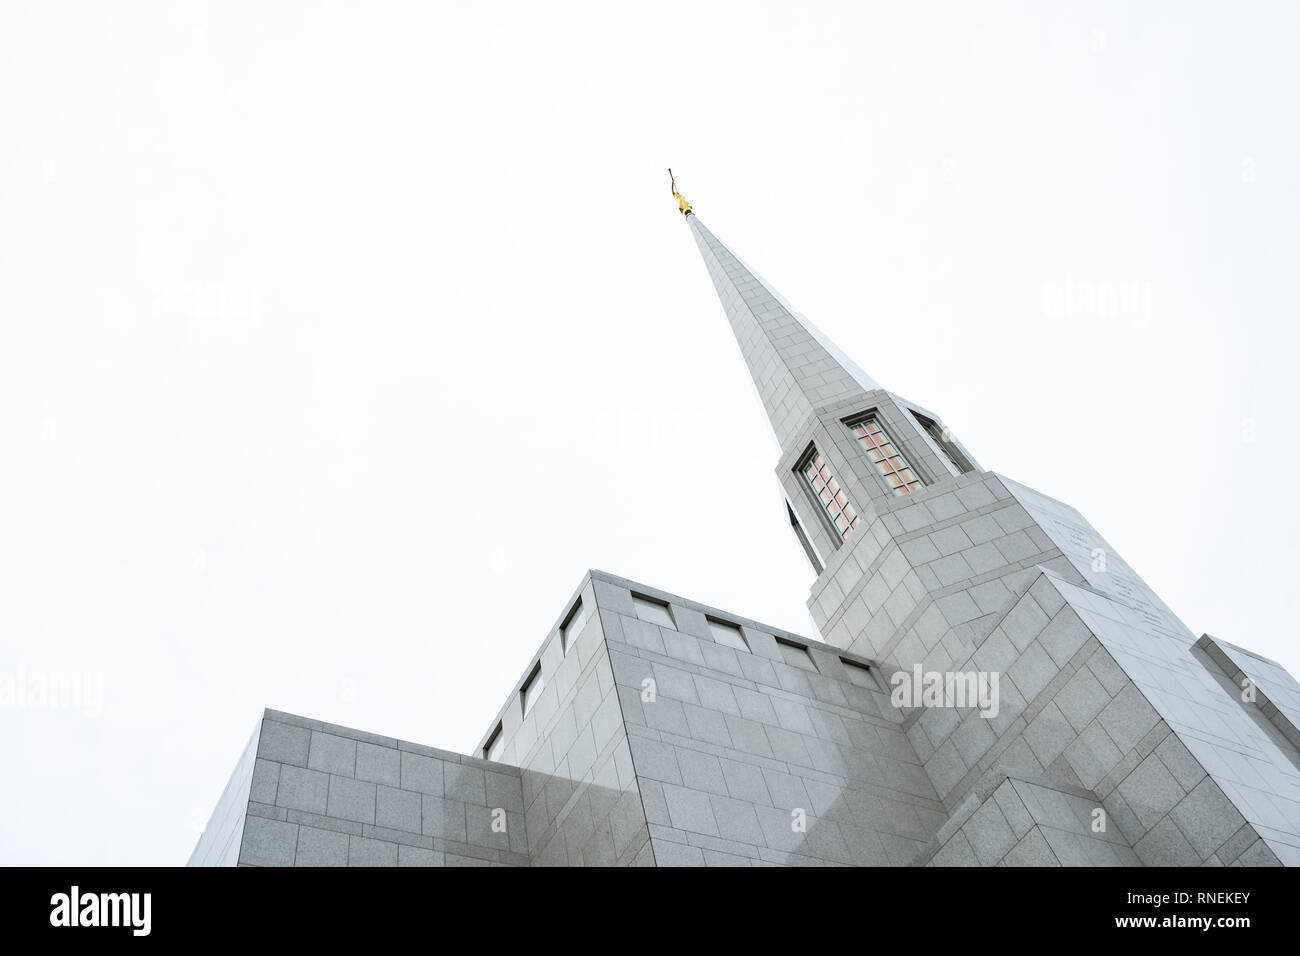 Preston Angleterre Preston England Temple Stock Photos Preston England Temple Stock